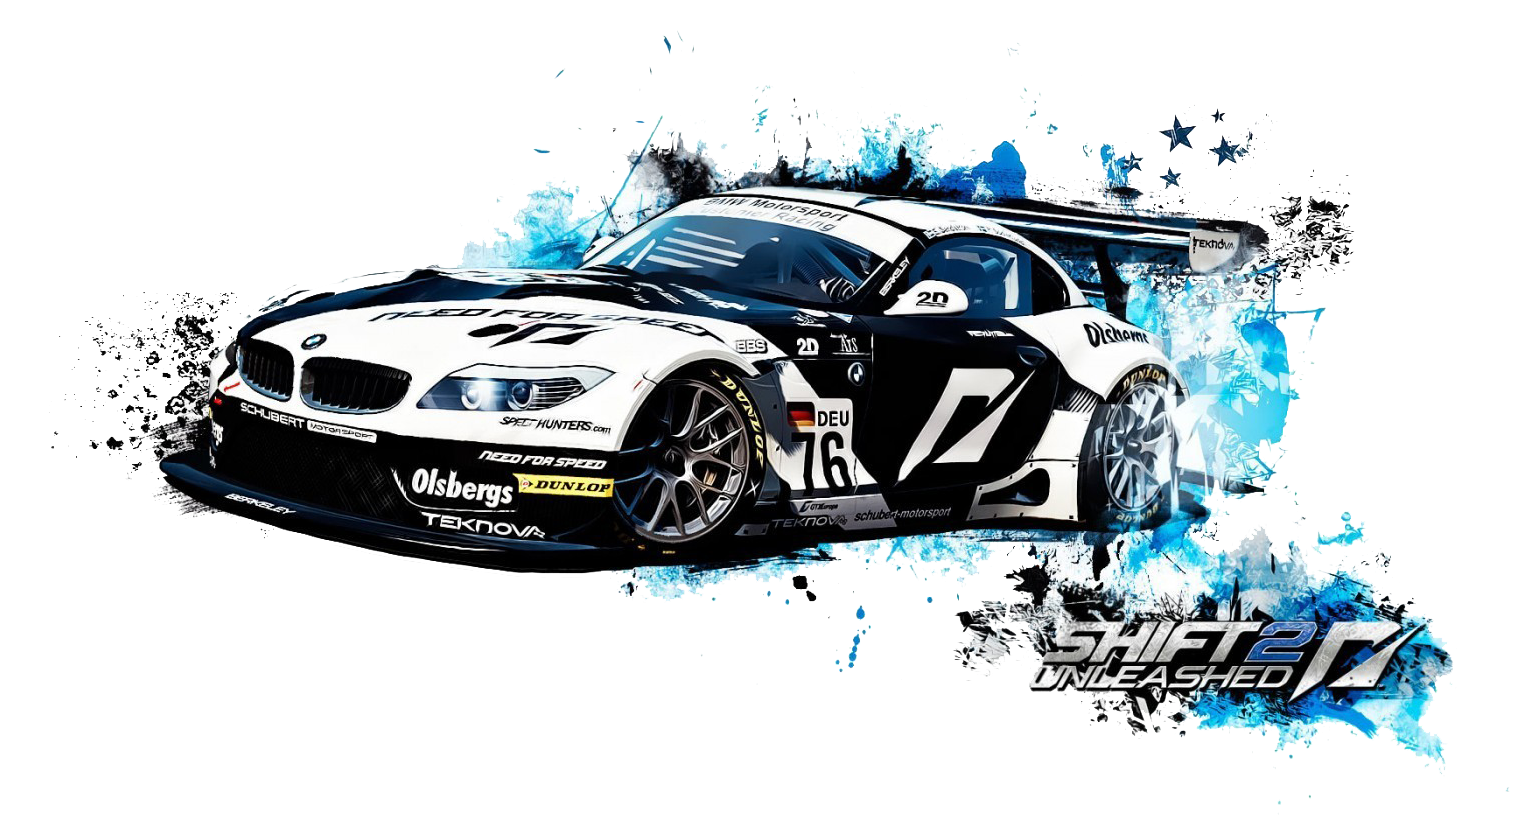 Need For Speed Photo PNG Image